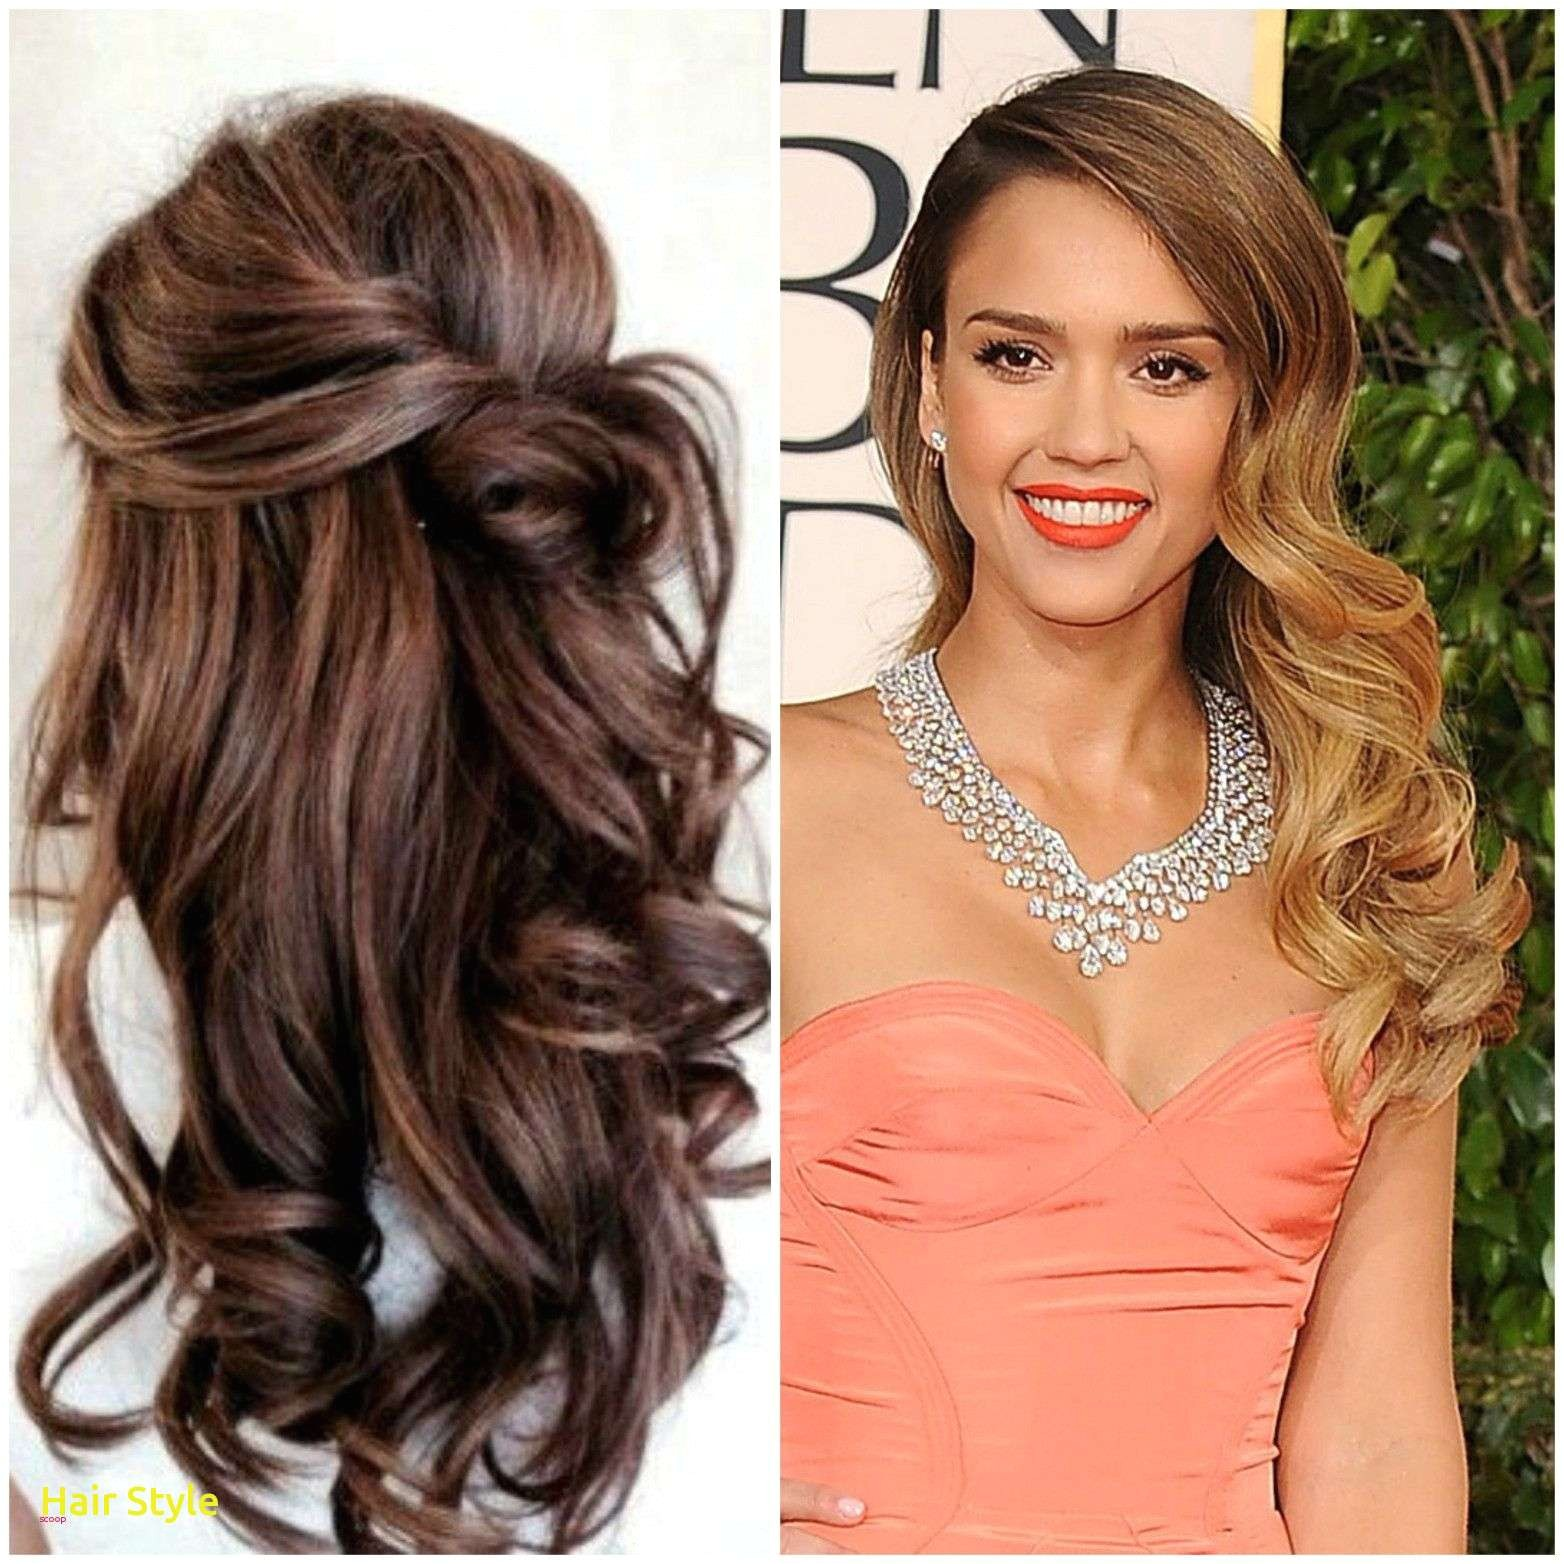 Girl Bridesmaid Hairstyles Awesome Hair Style for Girls In Wedding